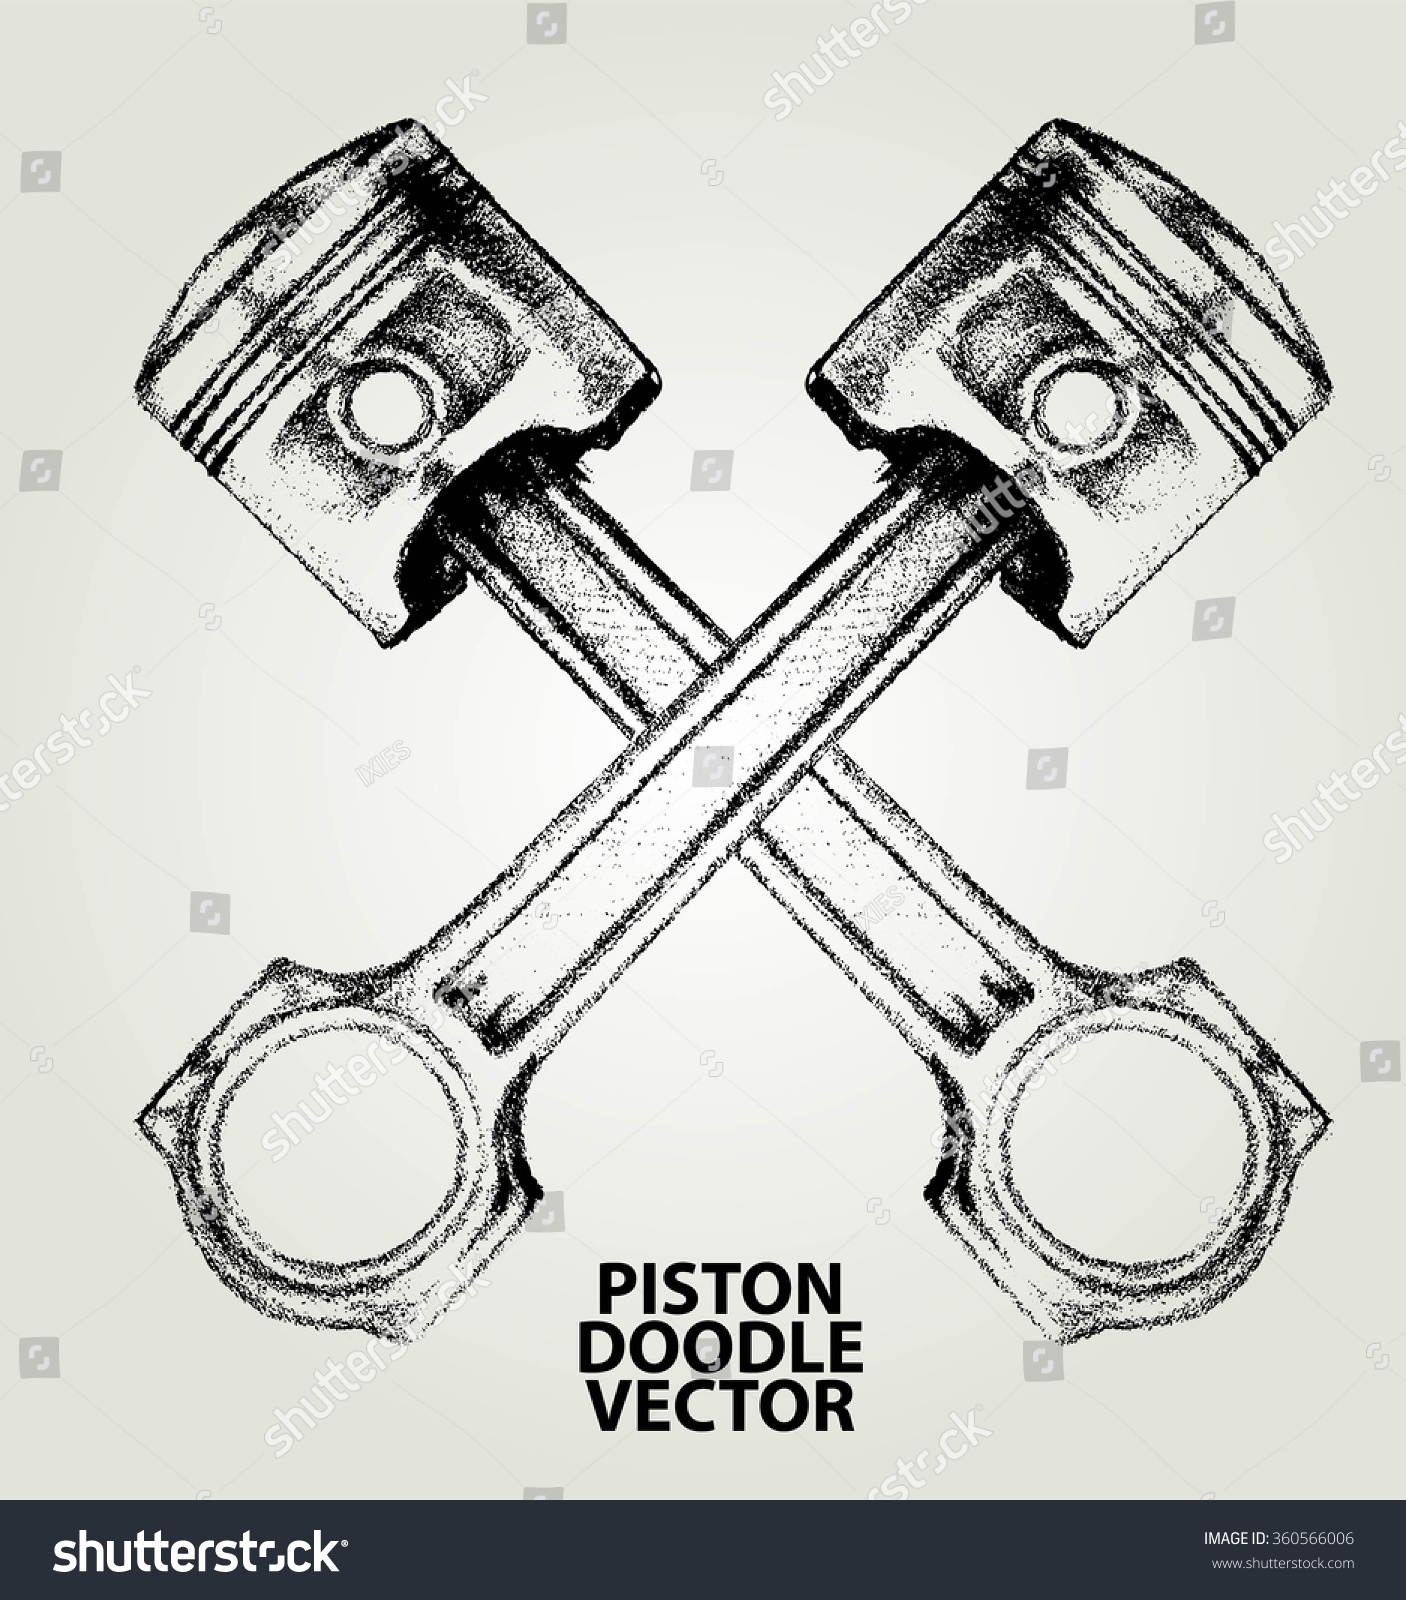 ... Engine pistons tattoo design stock vectors & vector clip art